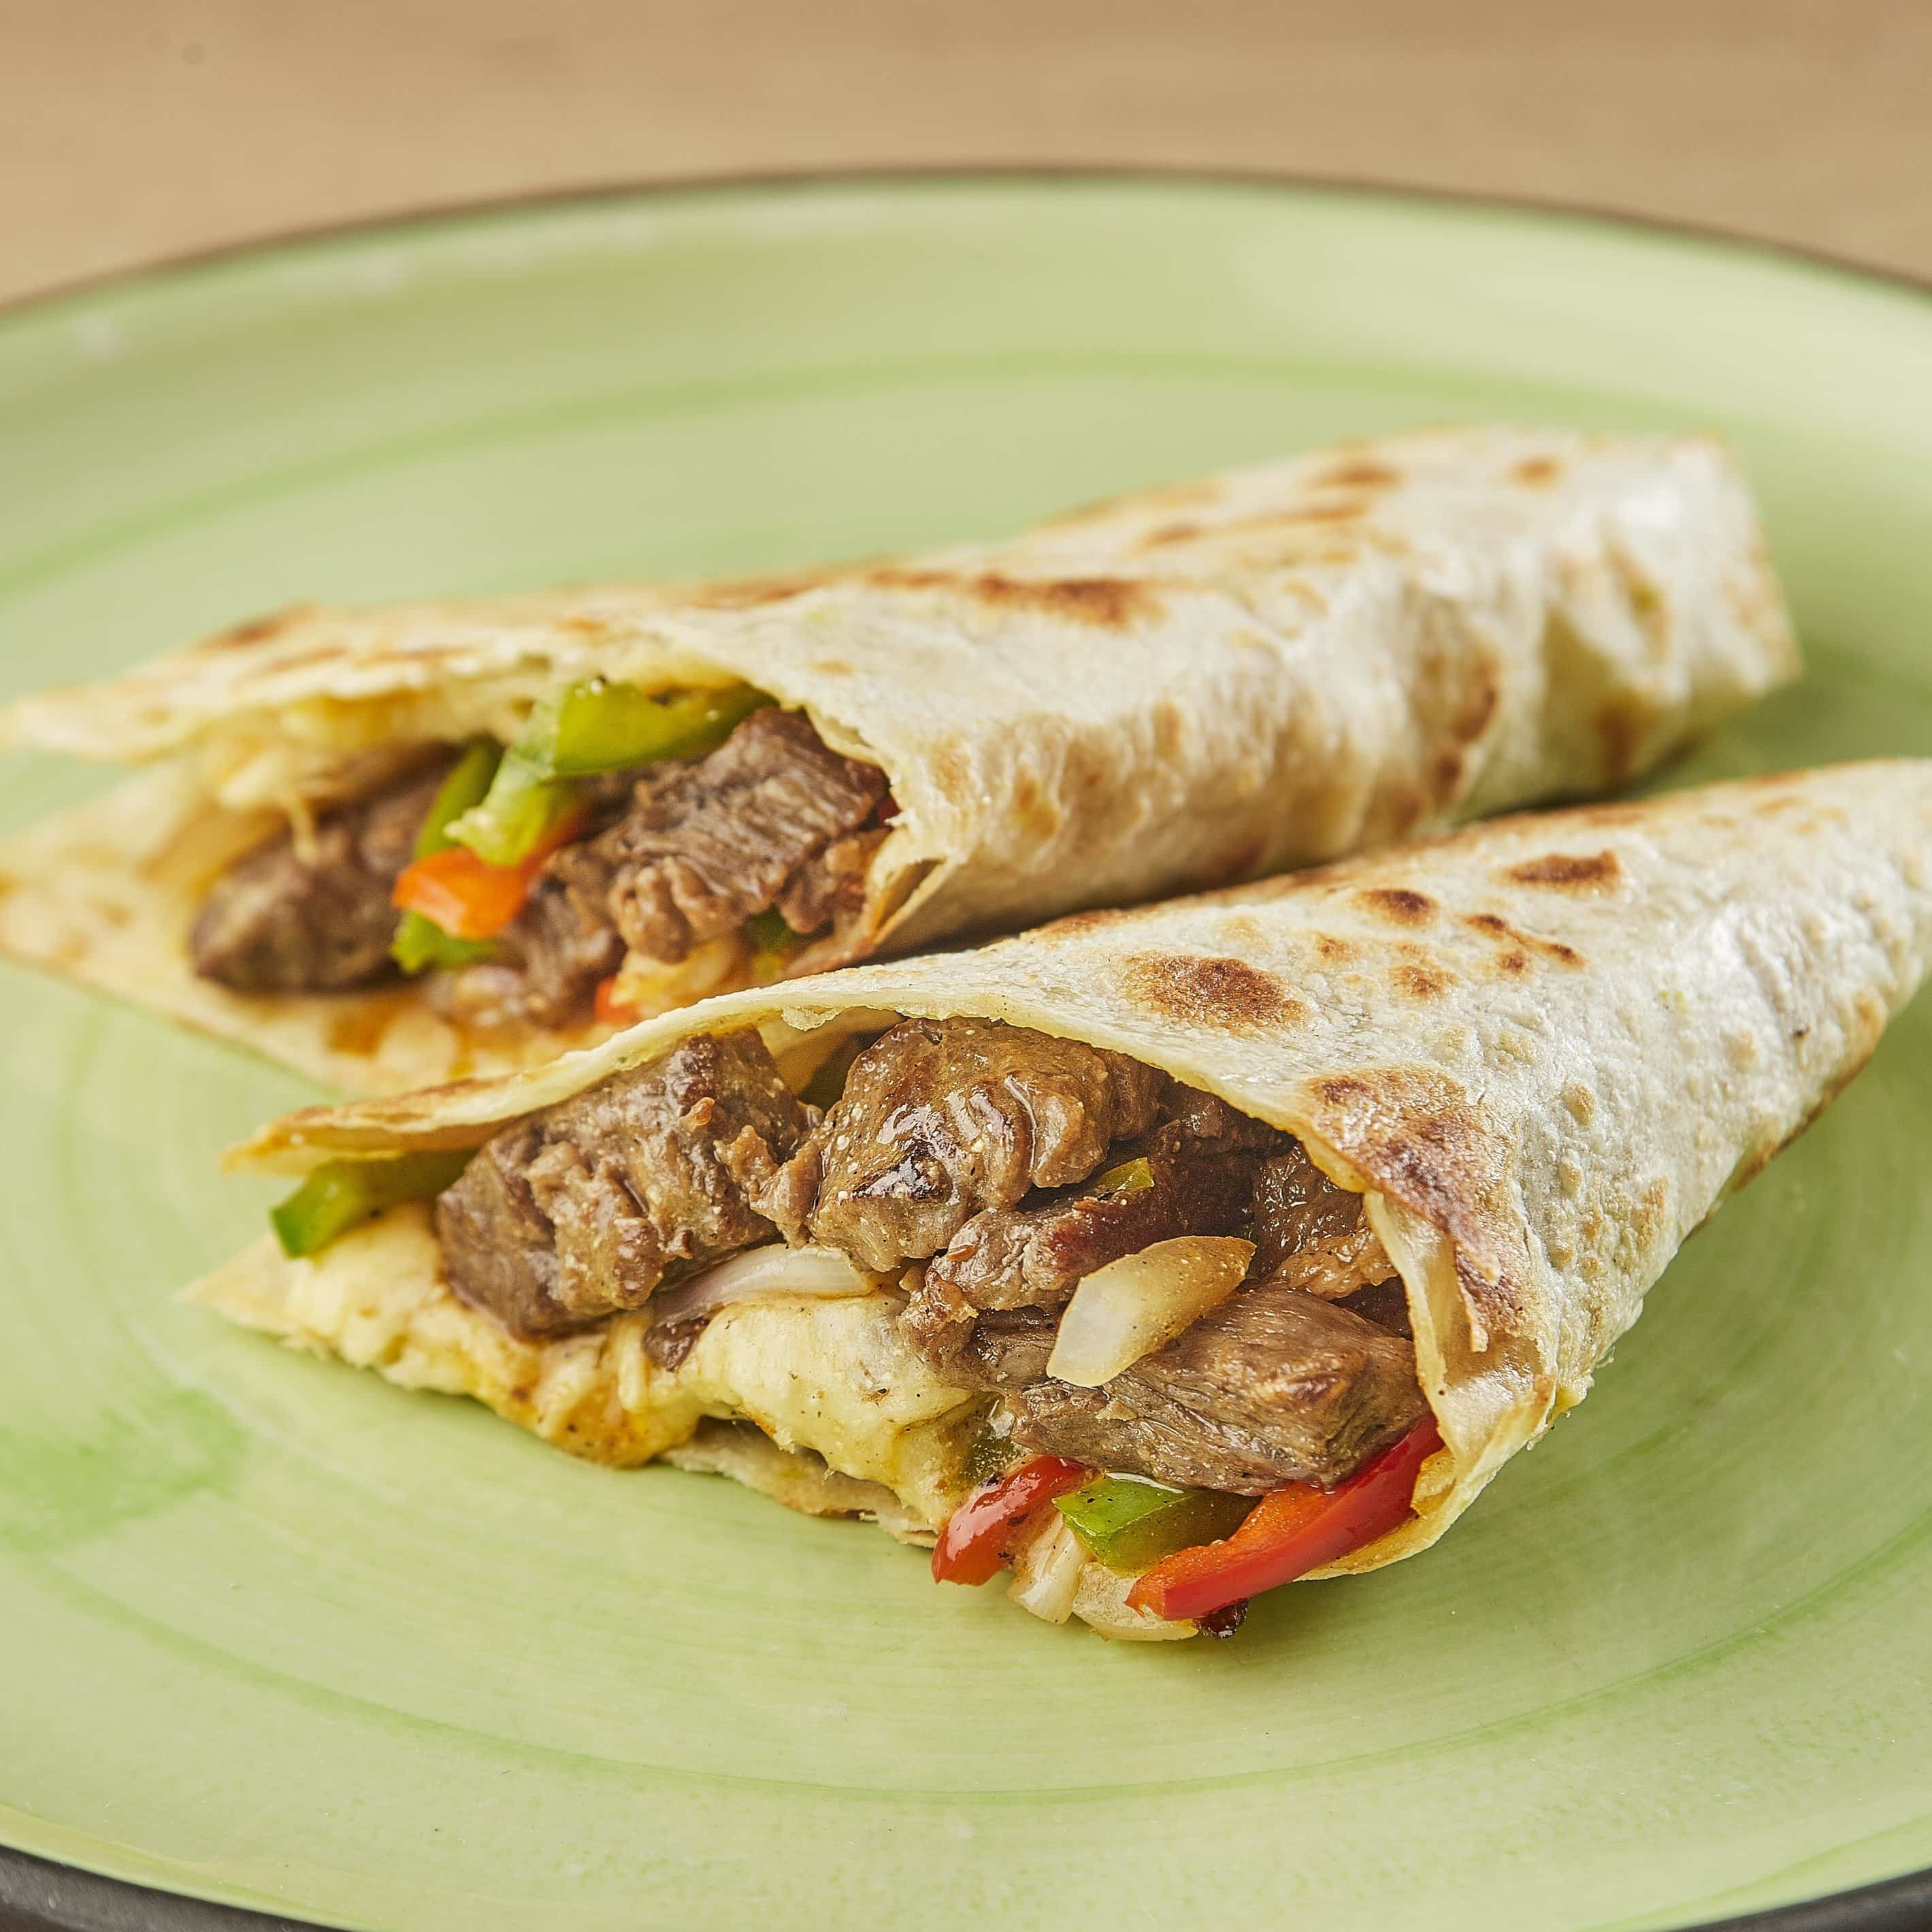 Quesadilla con Arrachera (certified Angus Beef)